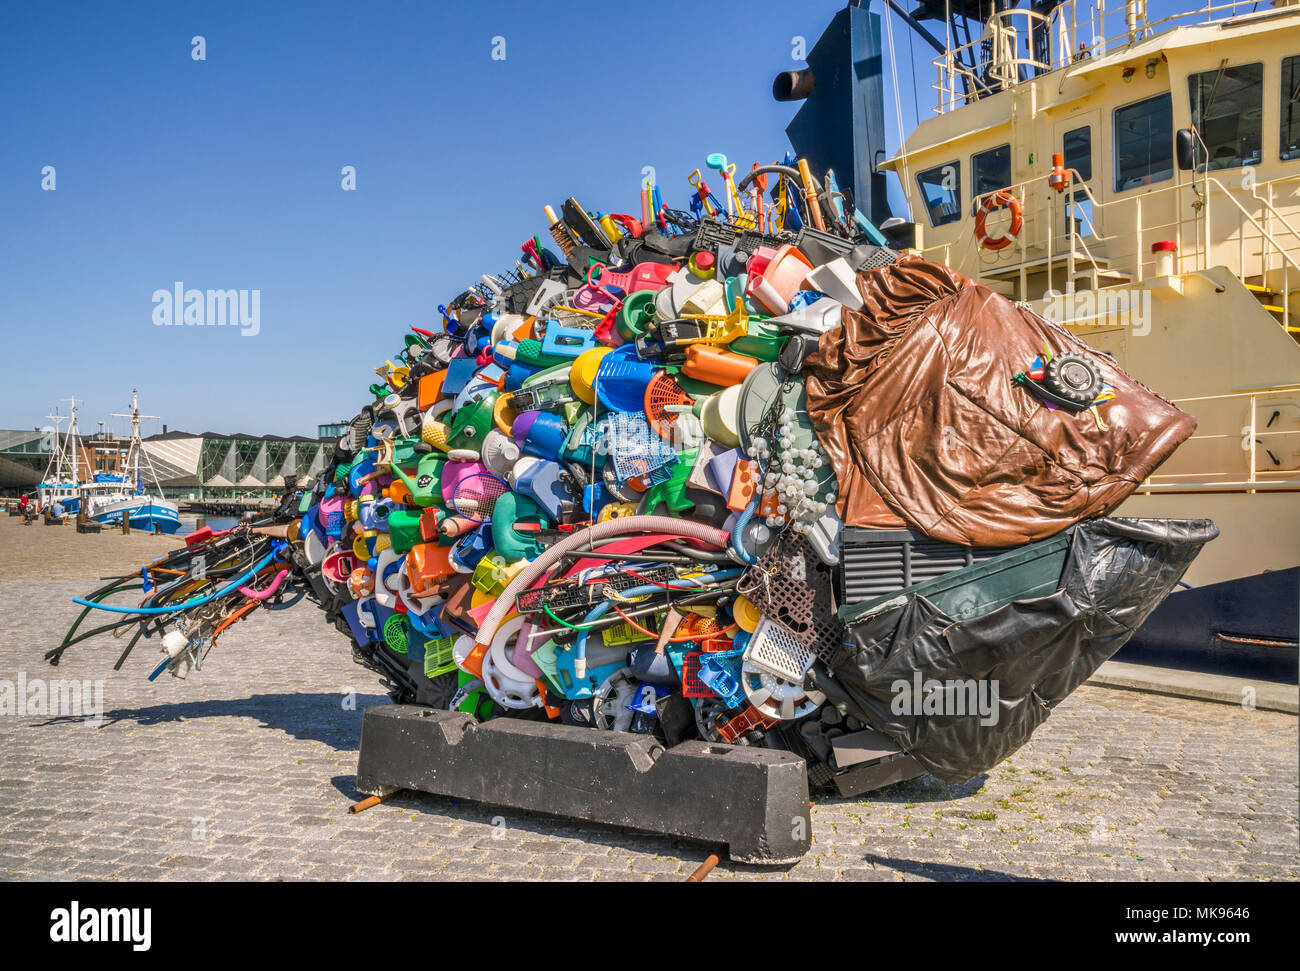 giant fish art installation titled 'Golden Bream from the Øre Sound' by the Japanese art unit Yodegawa Technique, made of discarted garbage items, Por - Stock Image